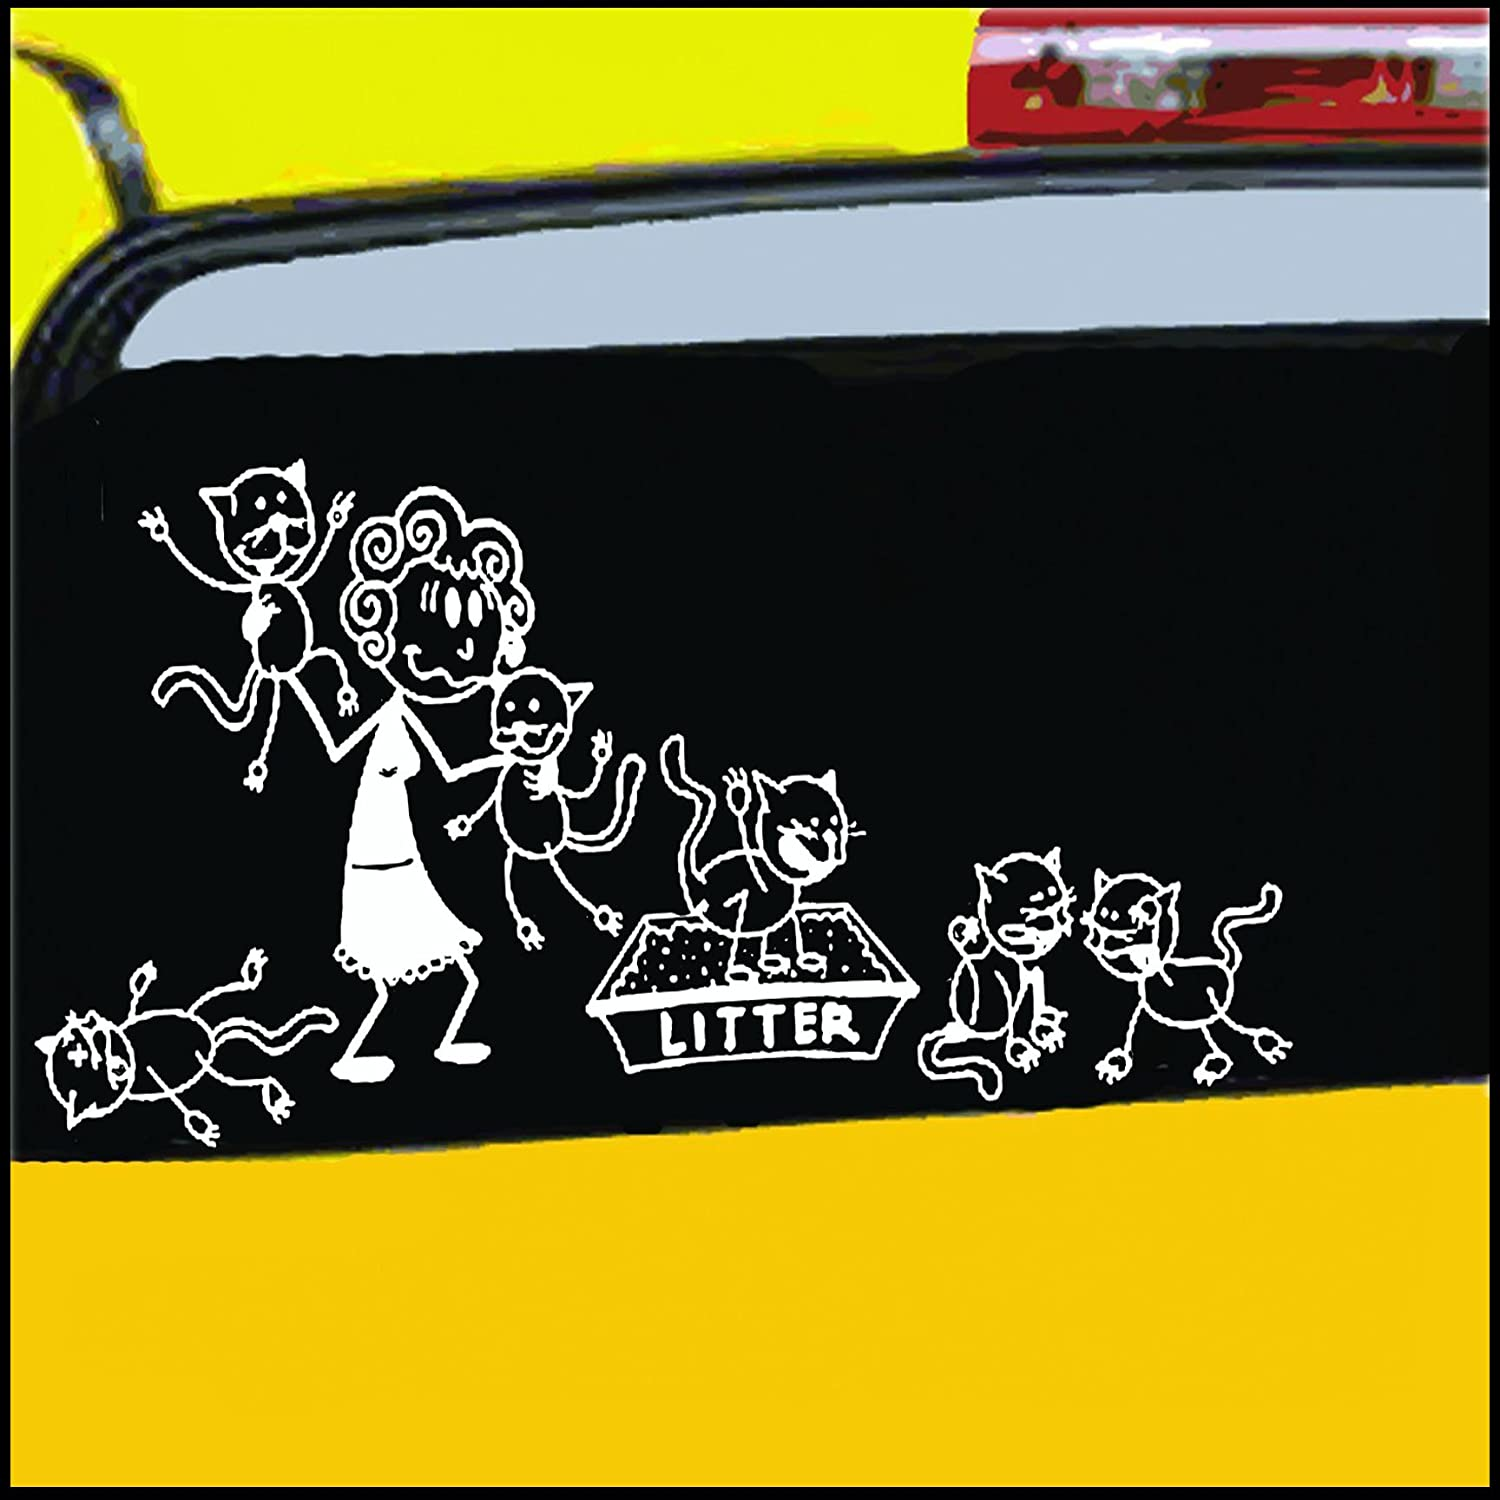 Amazoncom Crazy Cat Lady Stick Figure Family Decal Can Be - Family decal stickers for carsamazoncom stick family stick family car window wall laptop decal